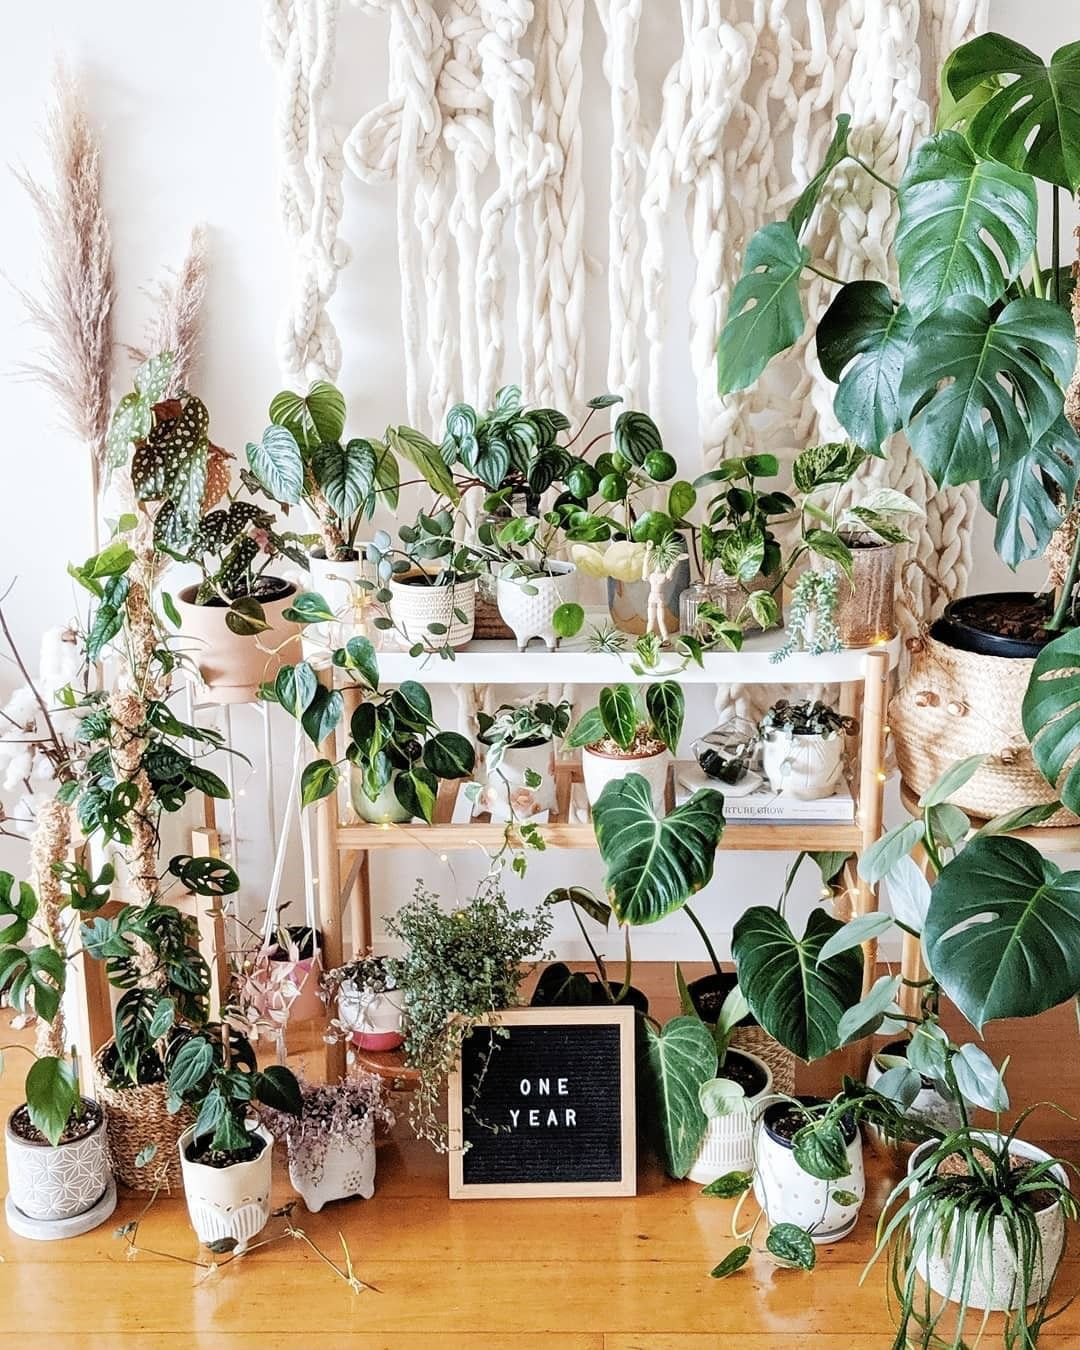 40+ Beautiful Plants Ideas For Home Decor